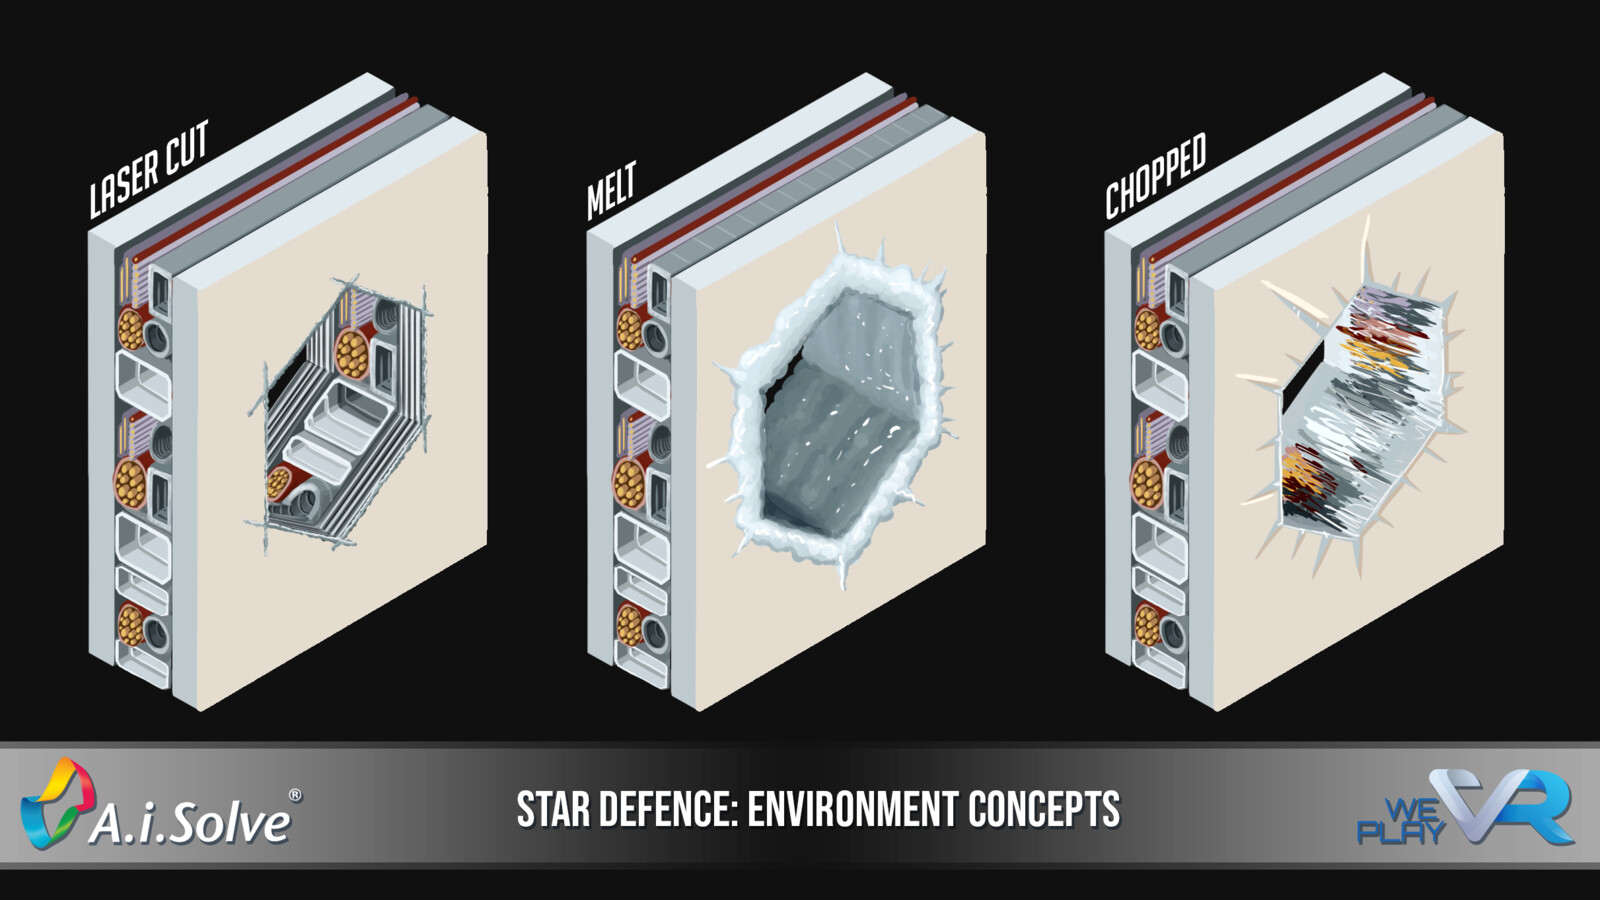 Star Defence: Environment Concepts